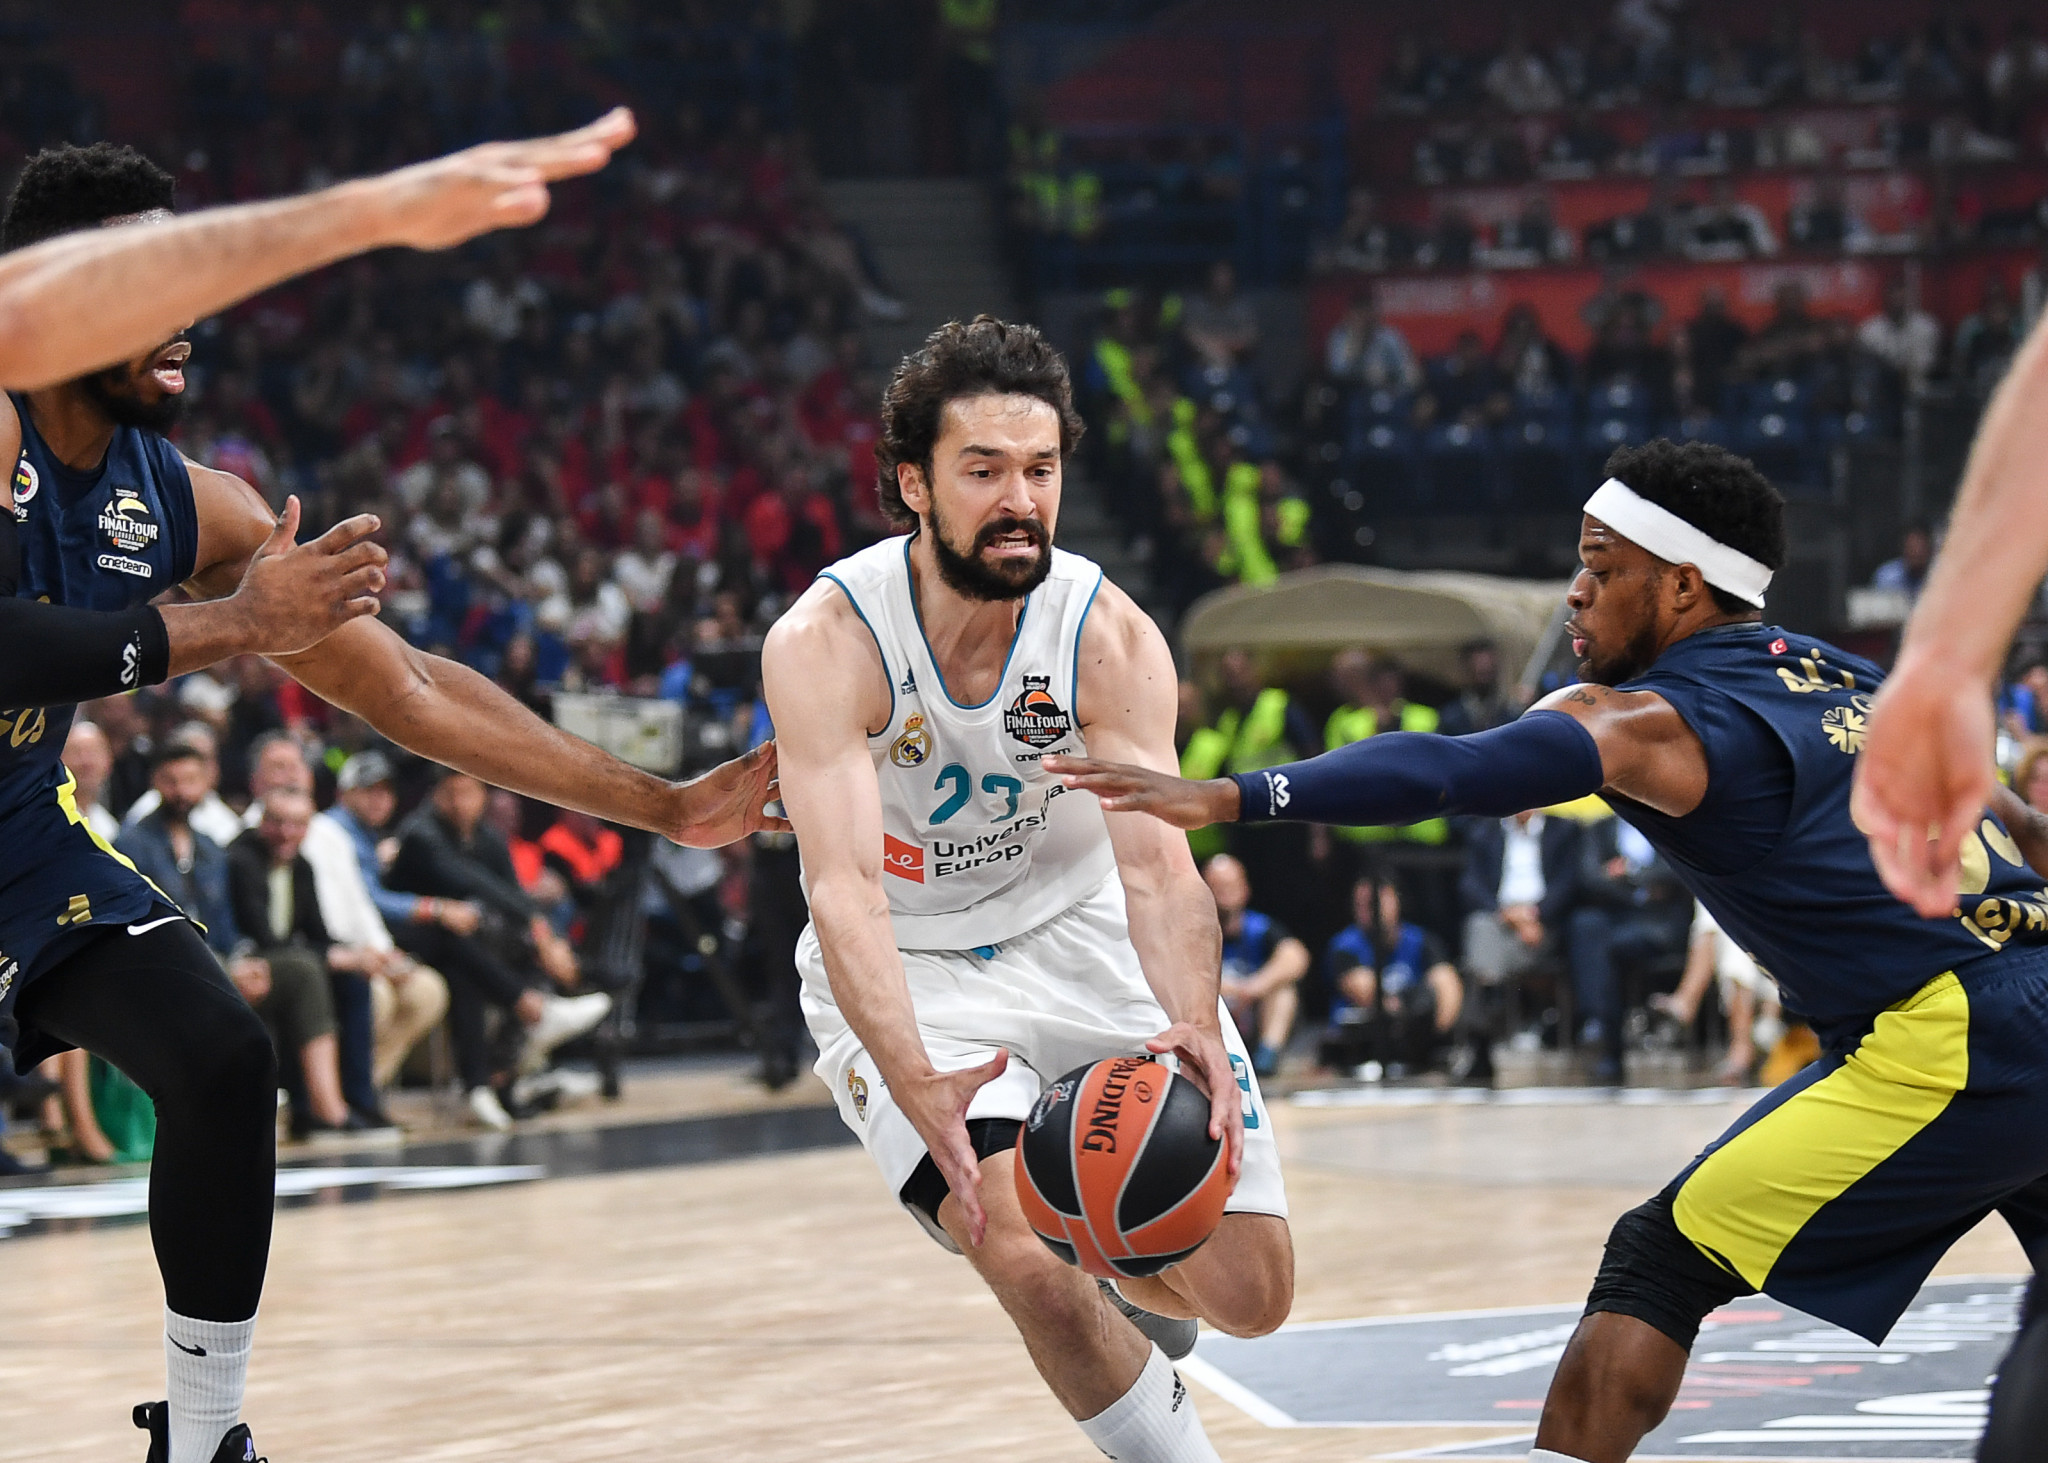 EuroLeague and the International Basketball Federation have been in dispute over their competitions ©Getty Images